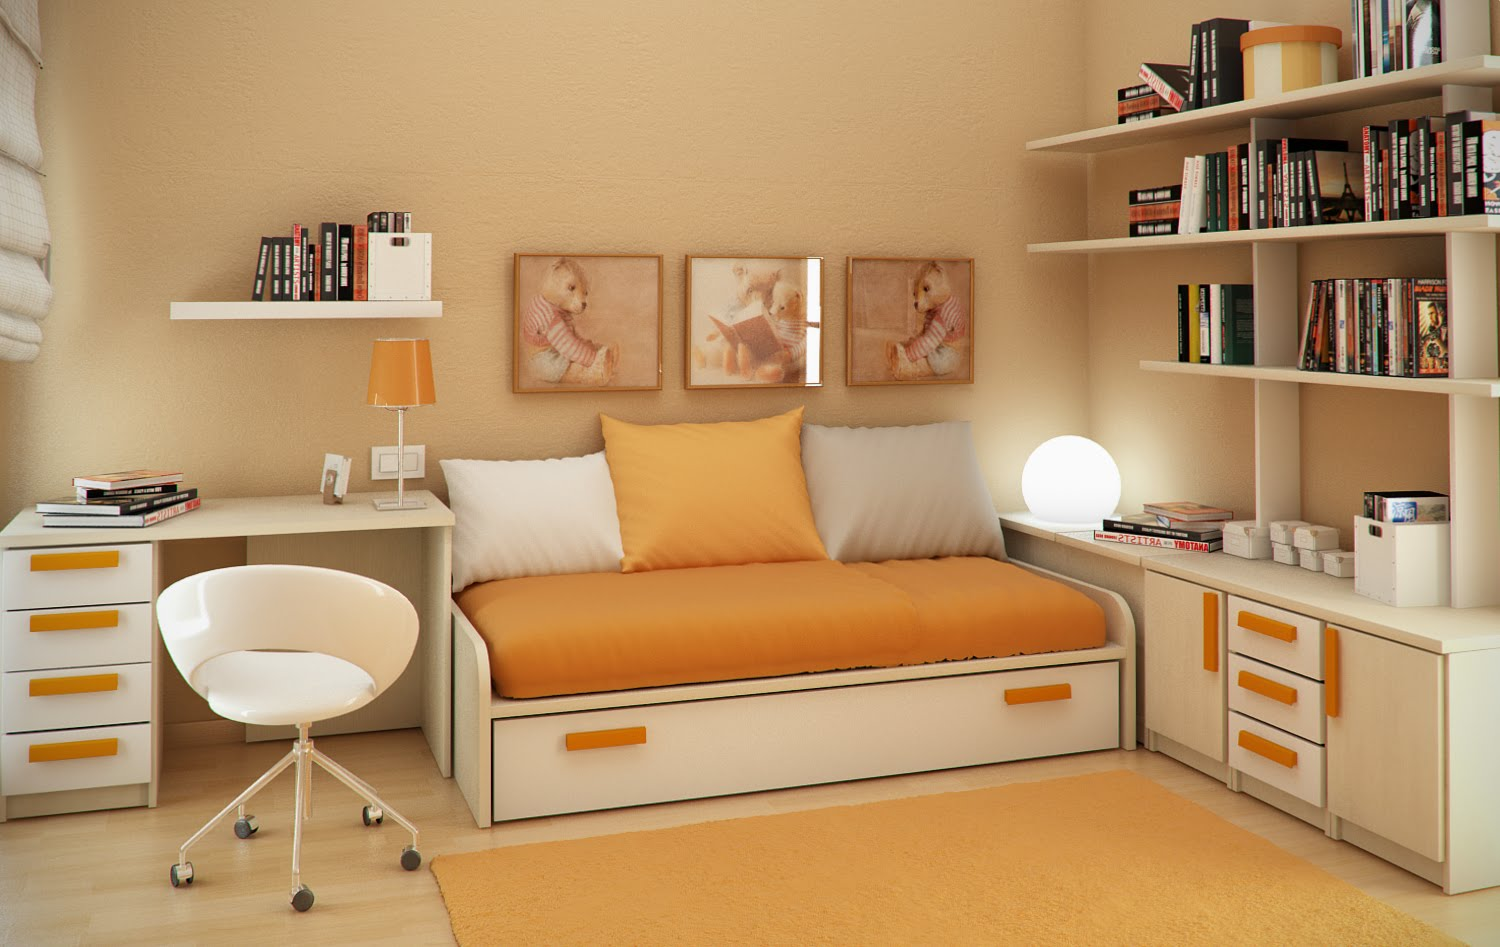 Space Saving For Kids Small Bedroom Design Ideas By Sergi